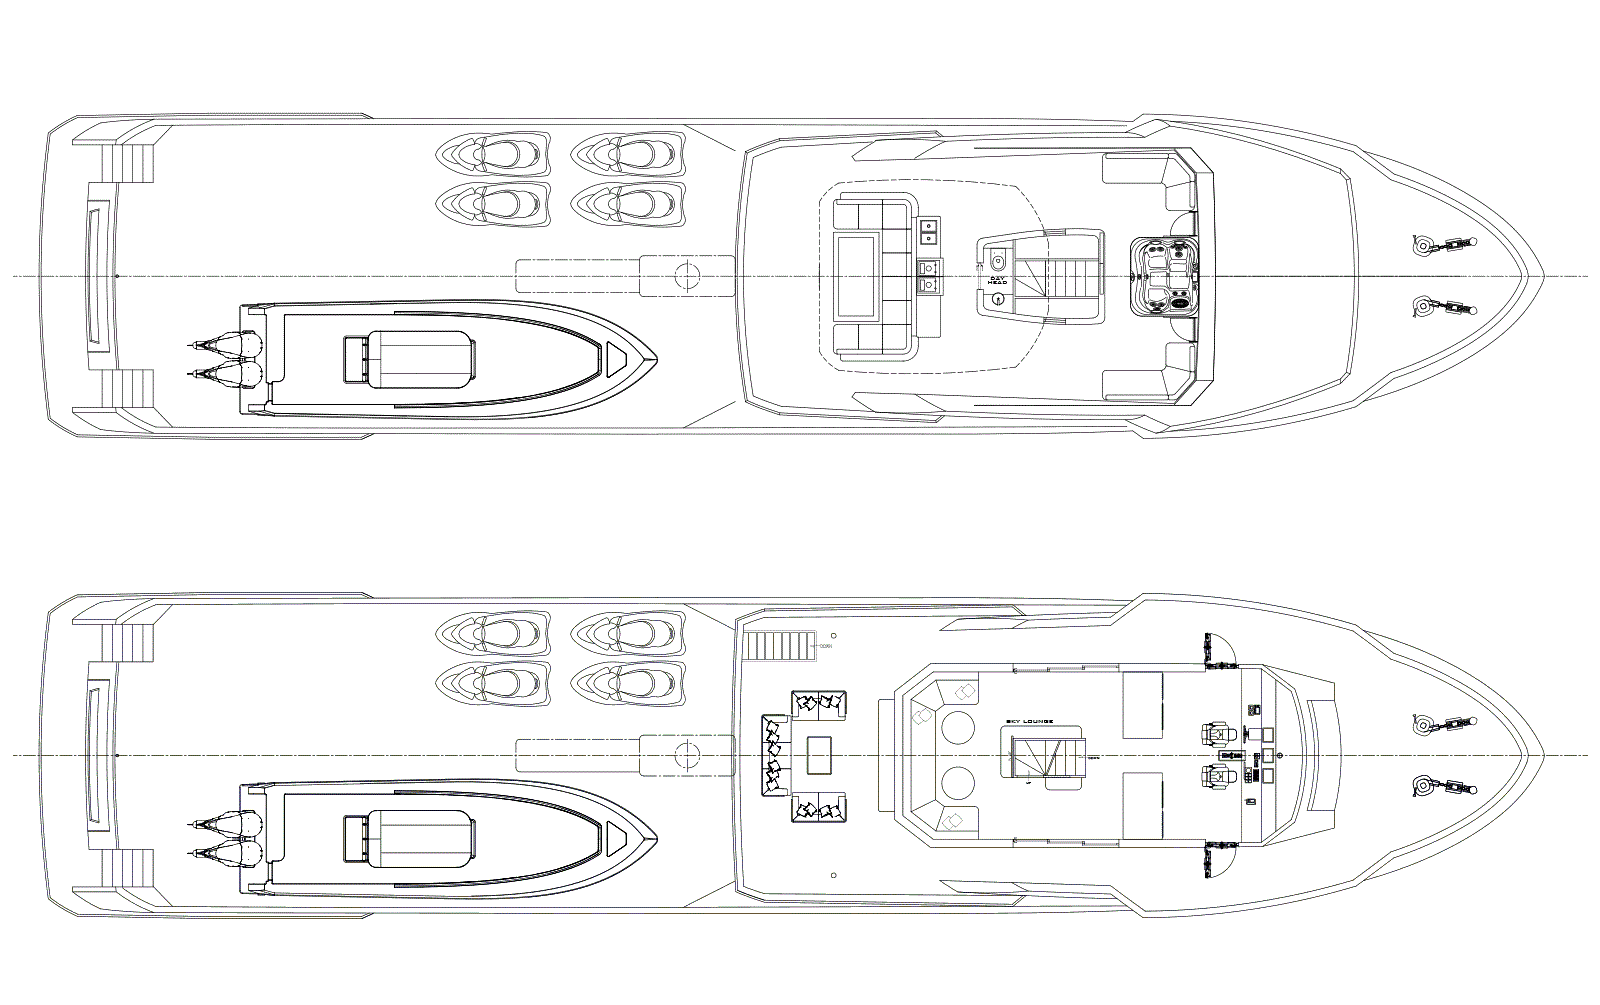 Deck Plan M/Y OMBRA 37 Yacht for Sale